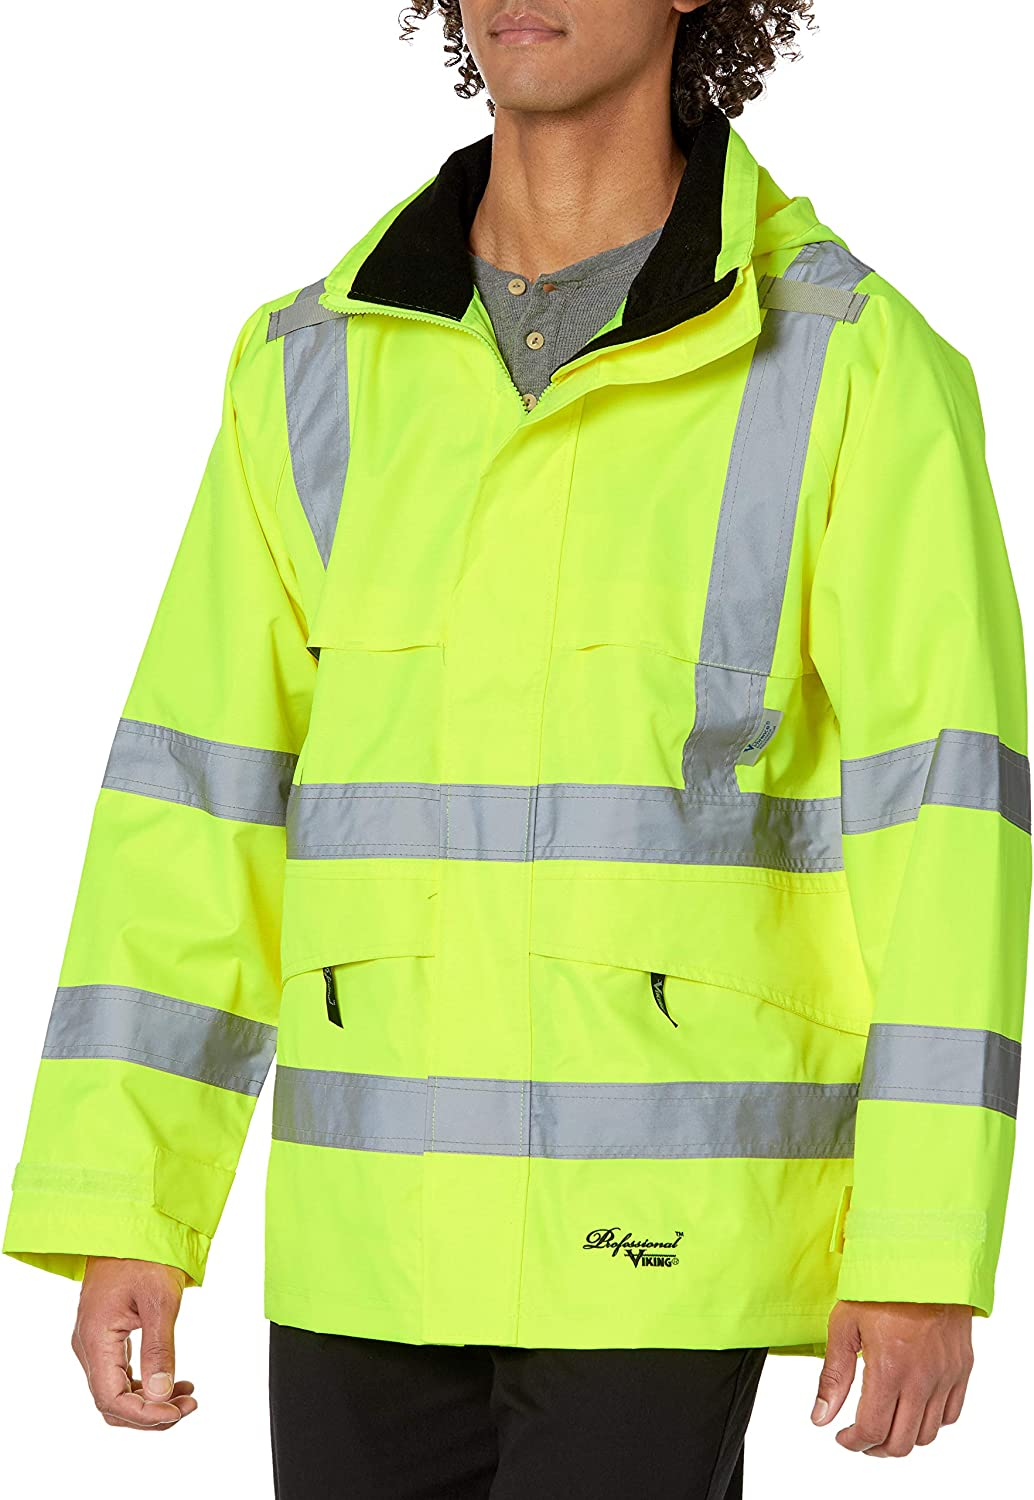 VIKING Professional Journeyman 300 Denier Trilobal Rip-Stop Waterproof and Windproof Hi-Vis Safety Rain Jacket with D Configuration 2